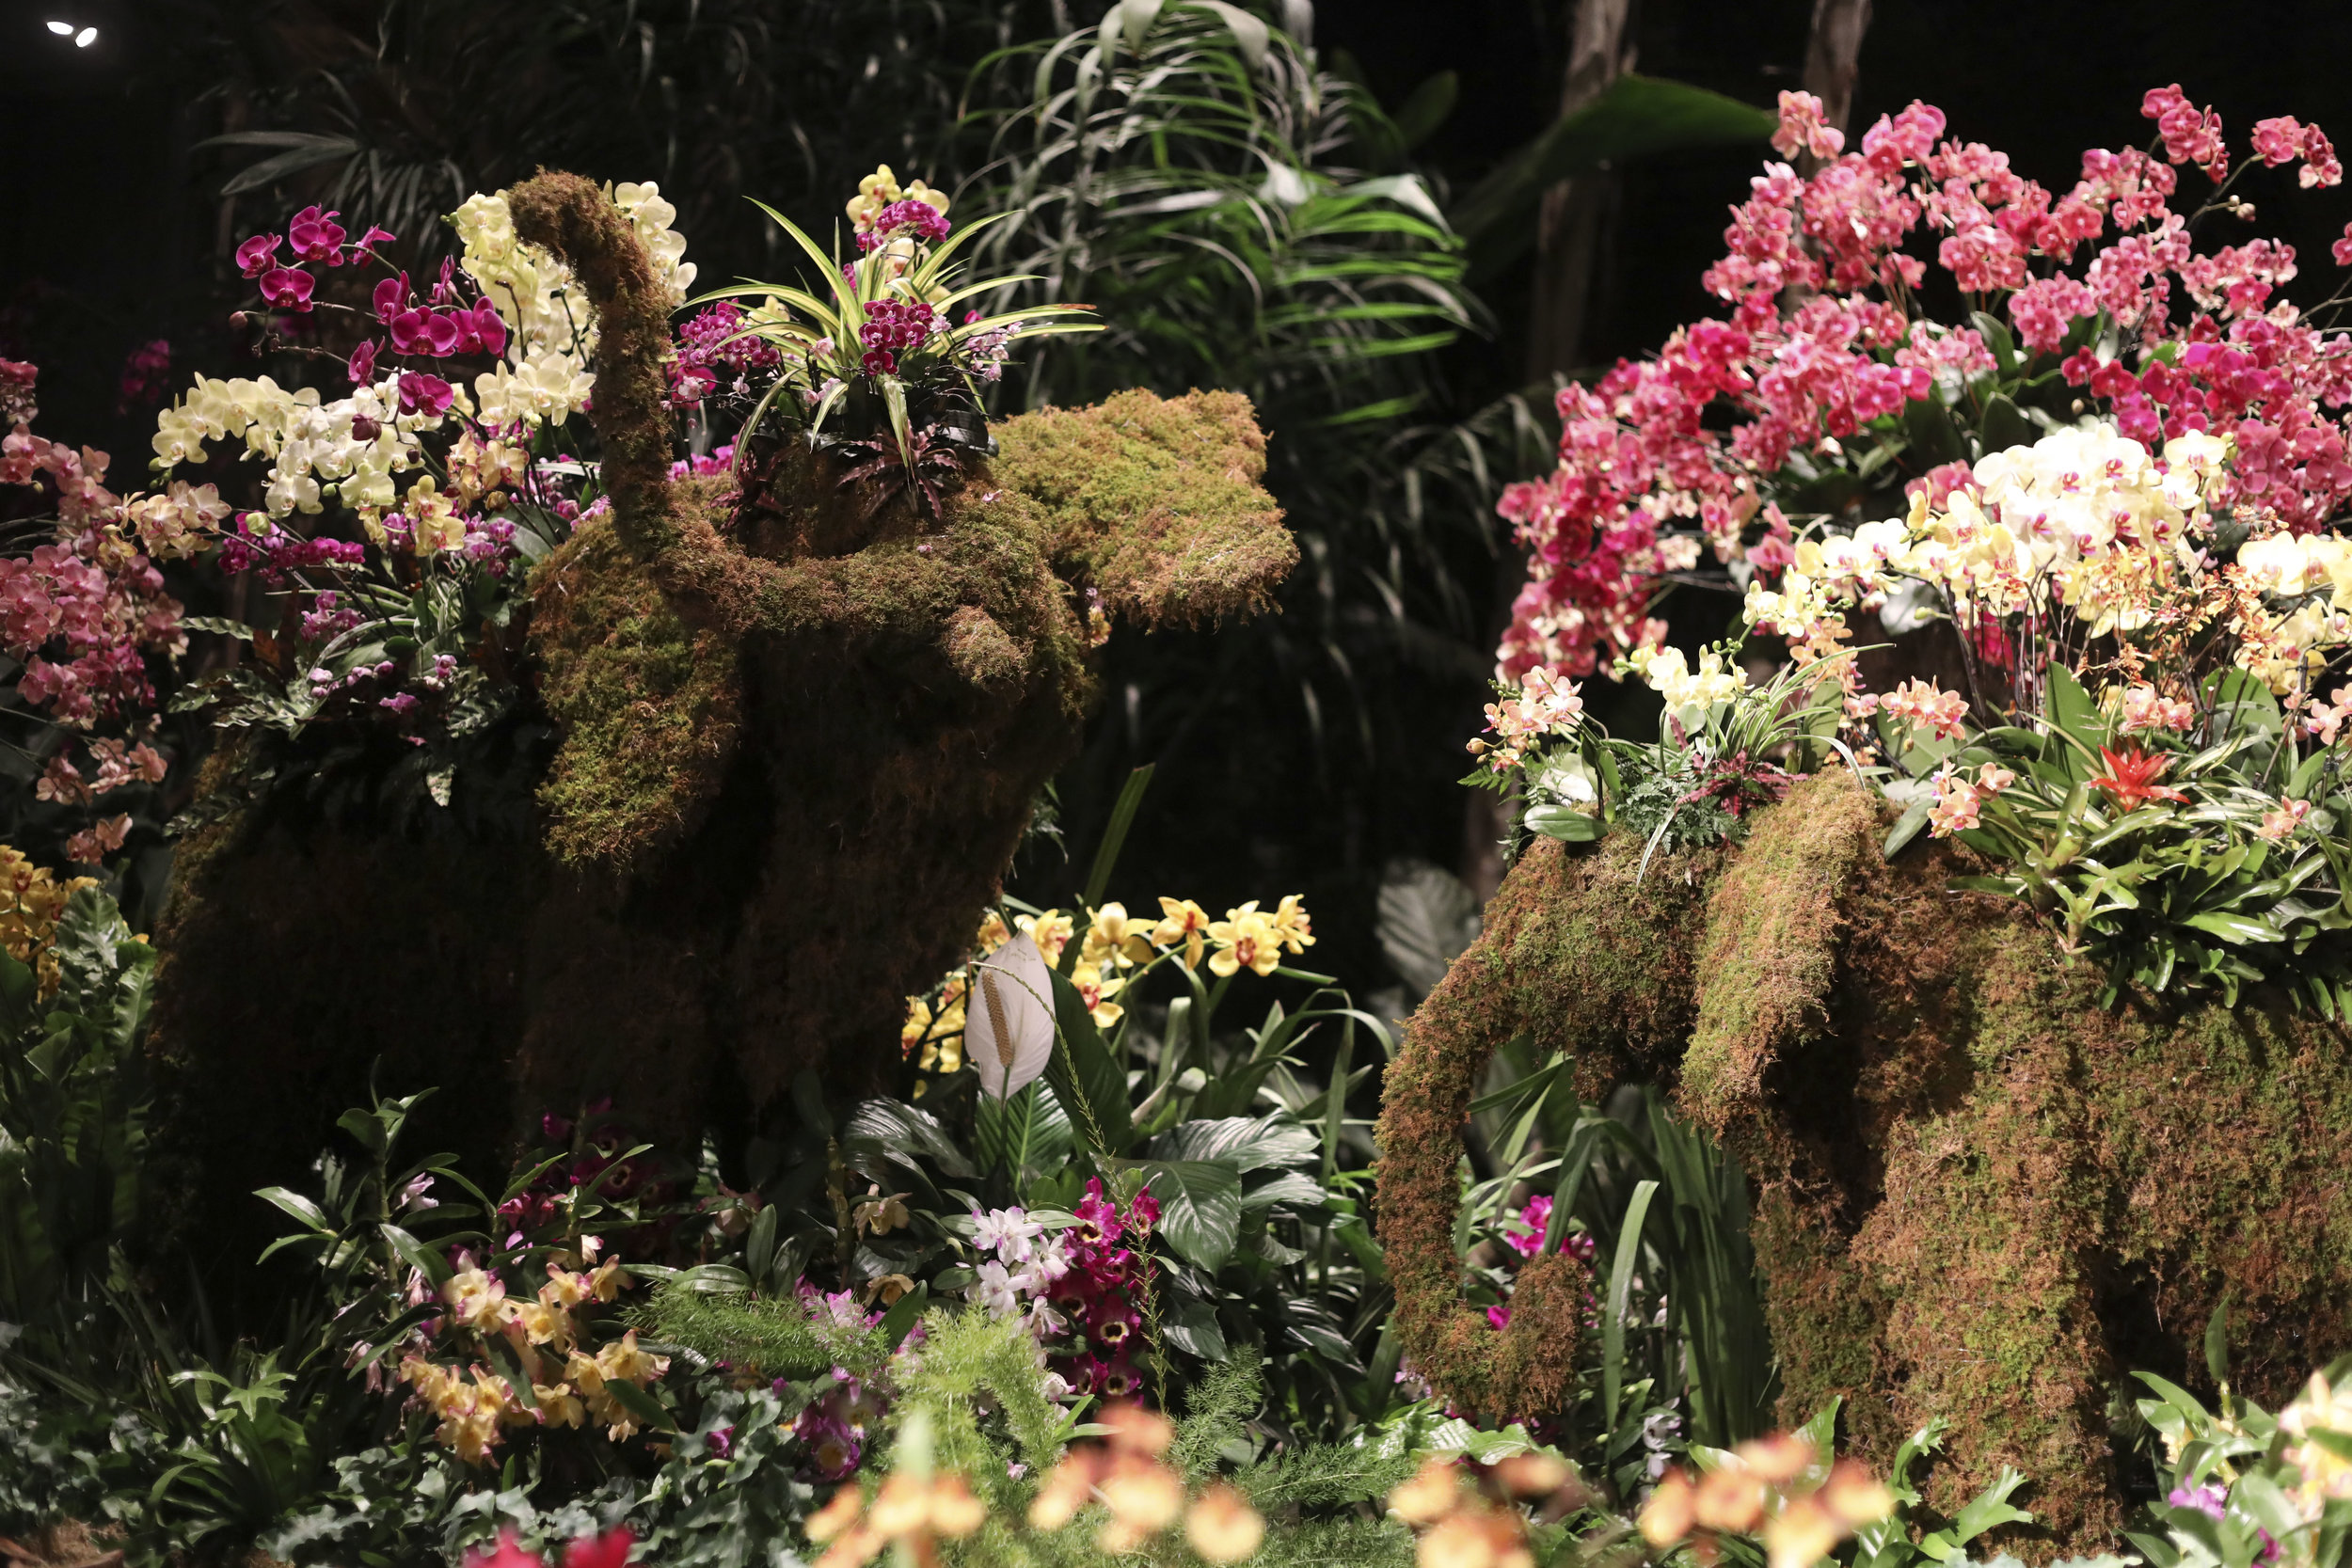 Thai elephants made with live plants.